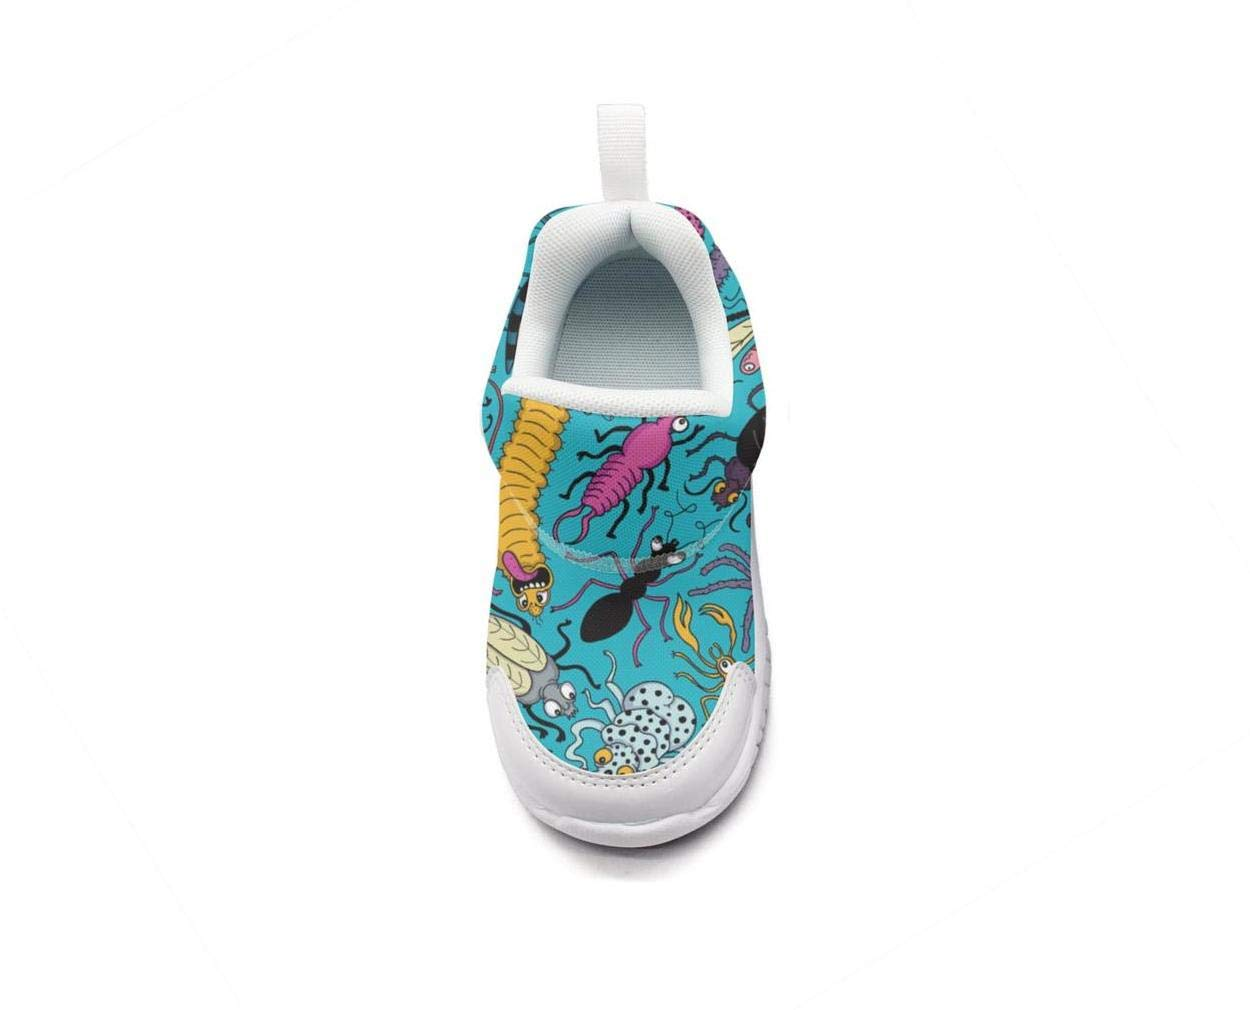 ONEYUAN Children Insects Caterpillars Bugs Patterns Kid Casual Lightweight Sport Shoes Sneakers Running Shoes